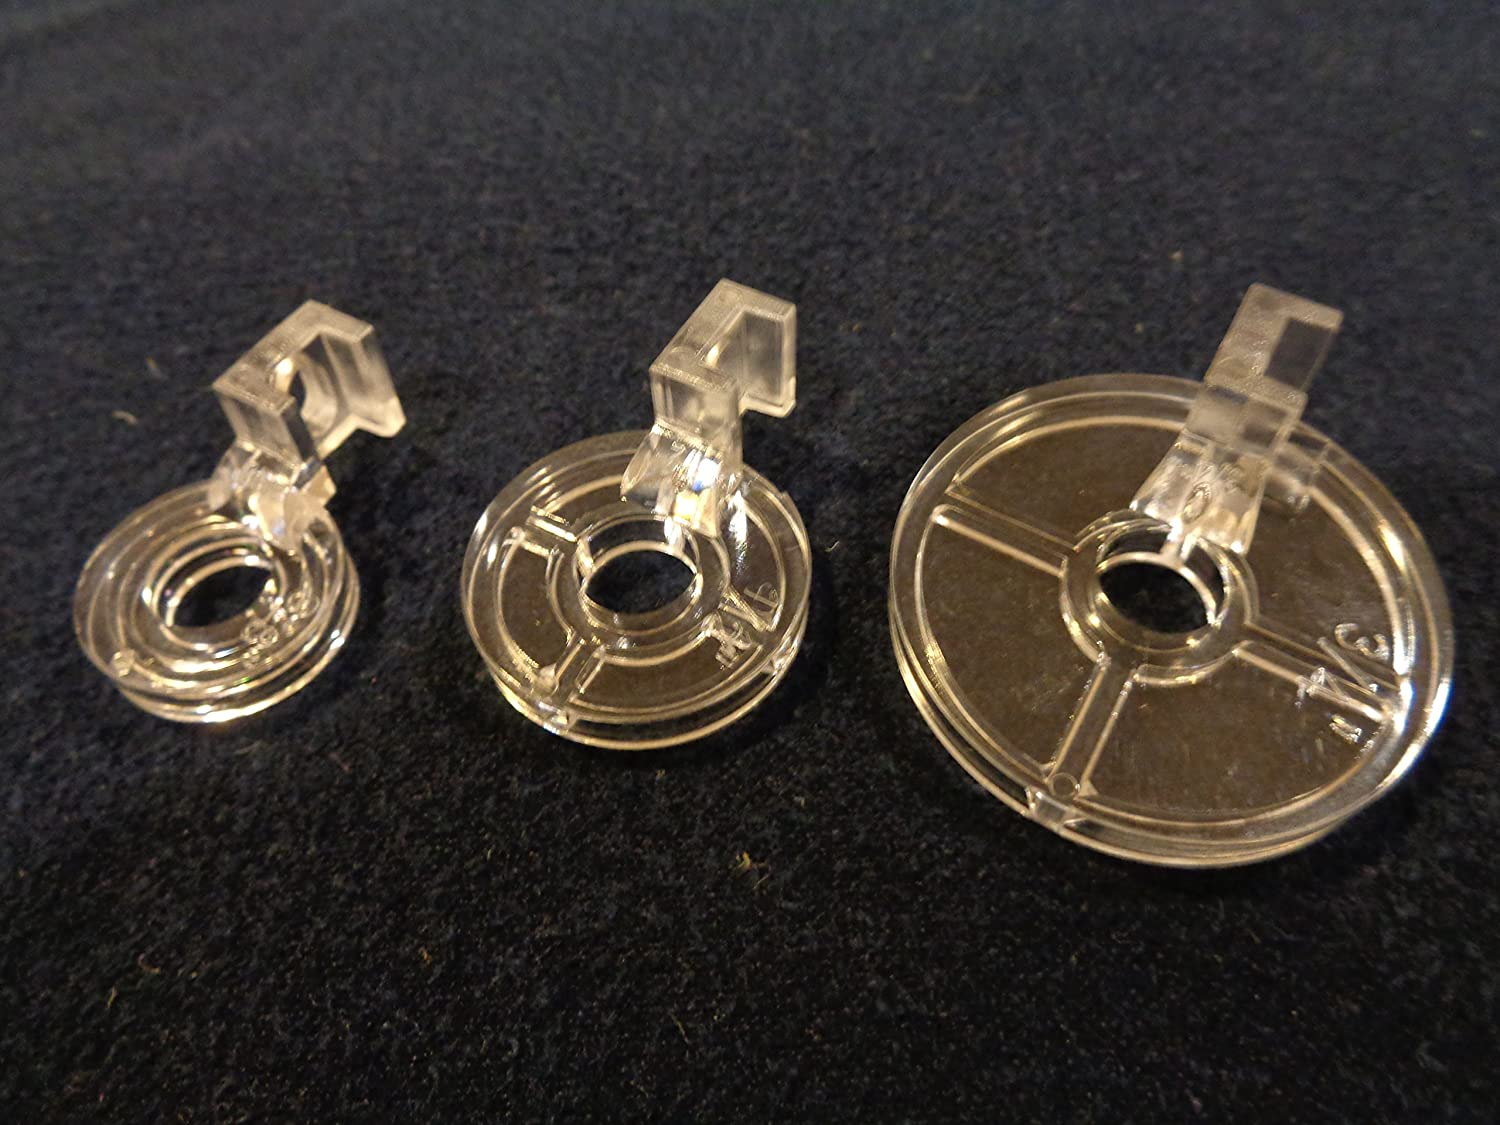 NGOSEW 3pcs CLARITY CLEAR ECHO QUILTING FEET FOOT Embroidery Works With Low Shank Sewing Machines 3//8,1//2,3//4